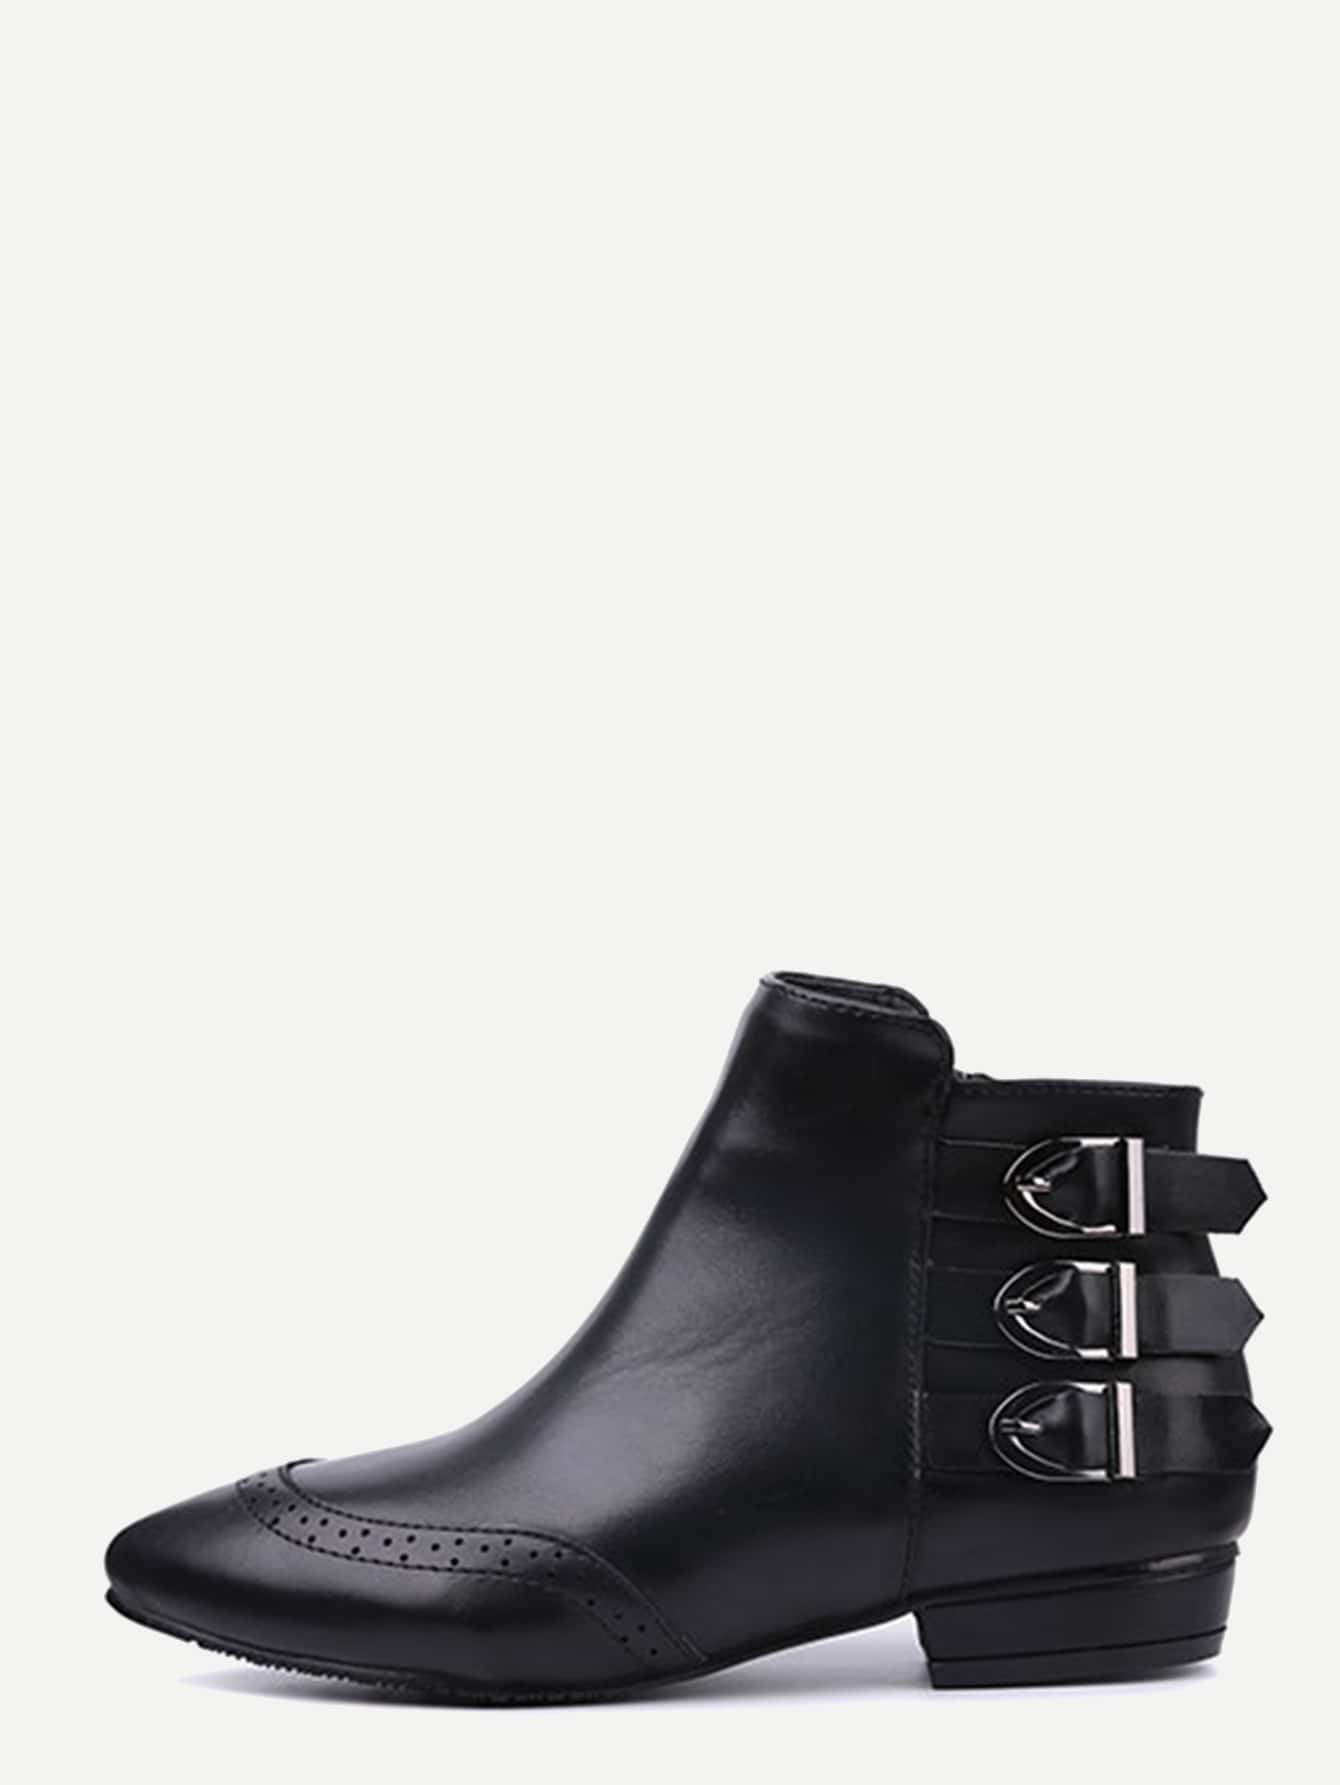 Black Buckled Strap Pointed Wingtip Ankle Boots shoes161117801